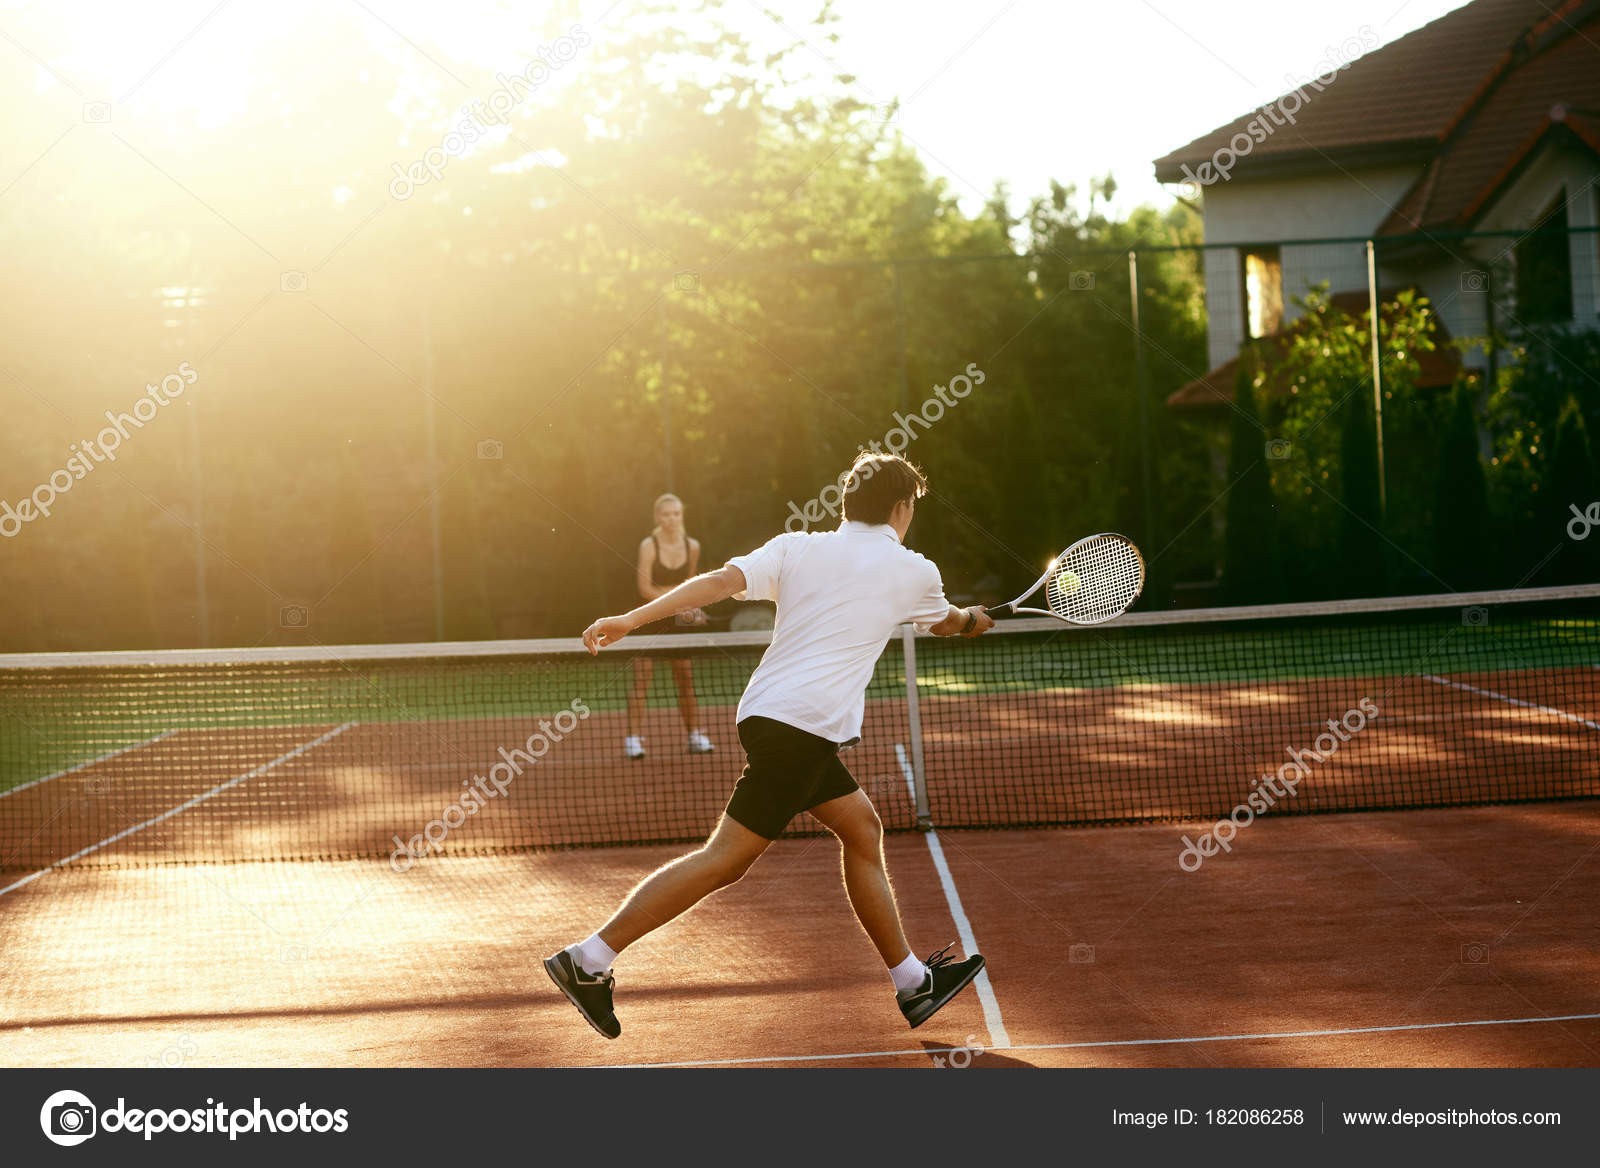 Young People Playing Tennis Outdoors Stock Photo C Puhhha 182086258